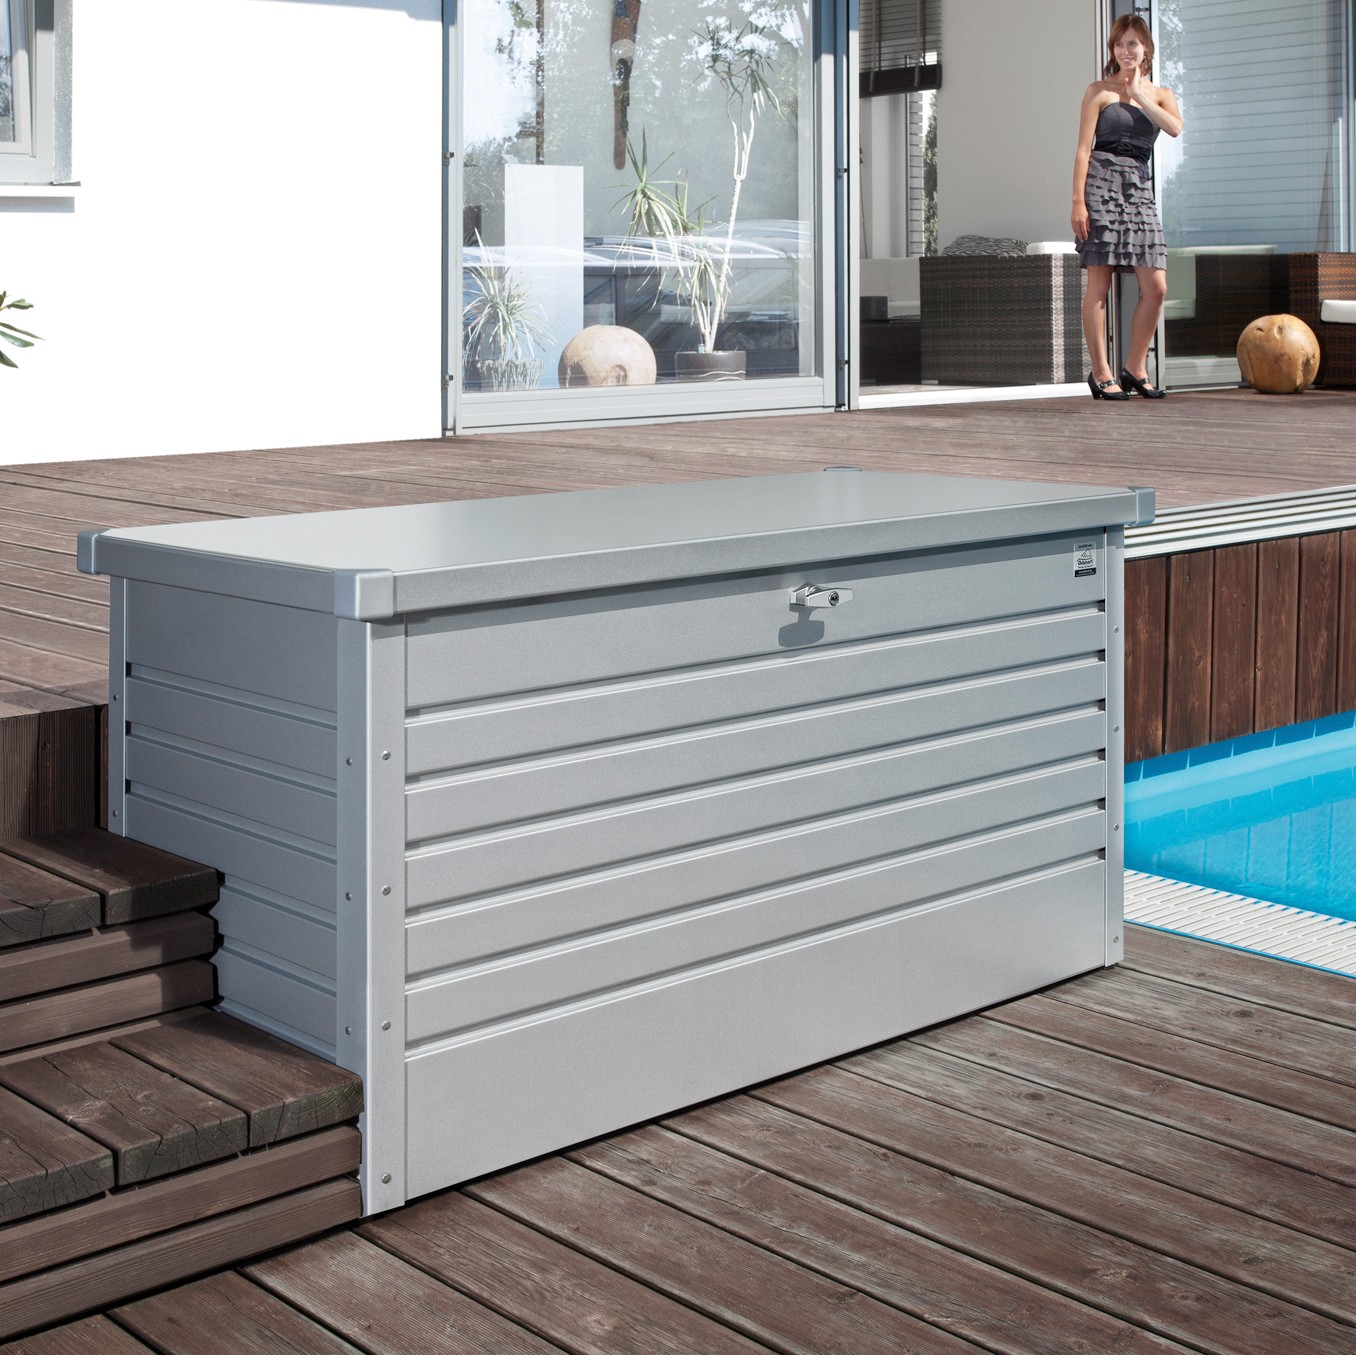 Gartenschrank Wetterfest Leisuretime Box 130 White